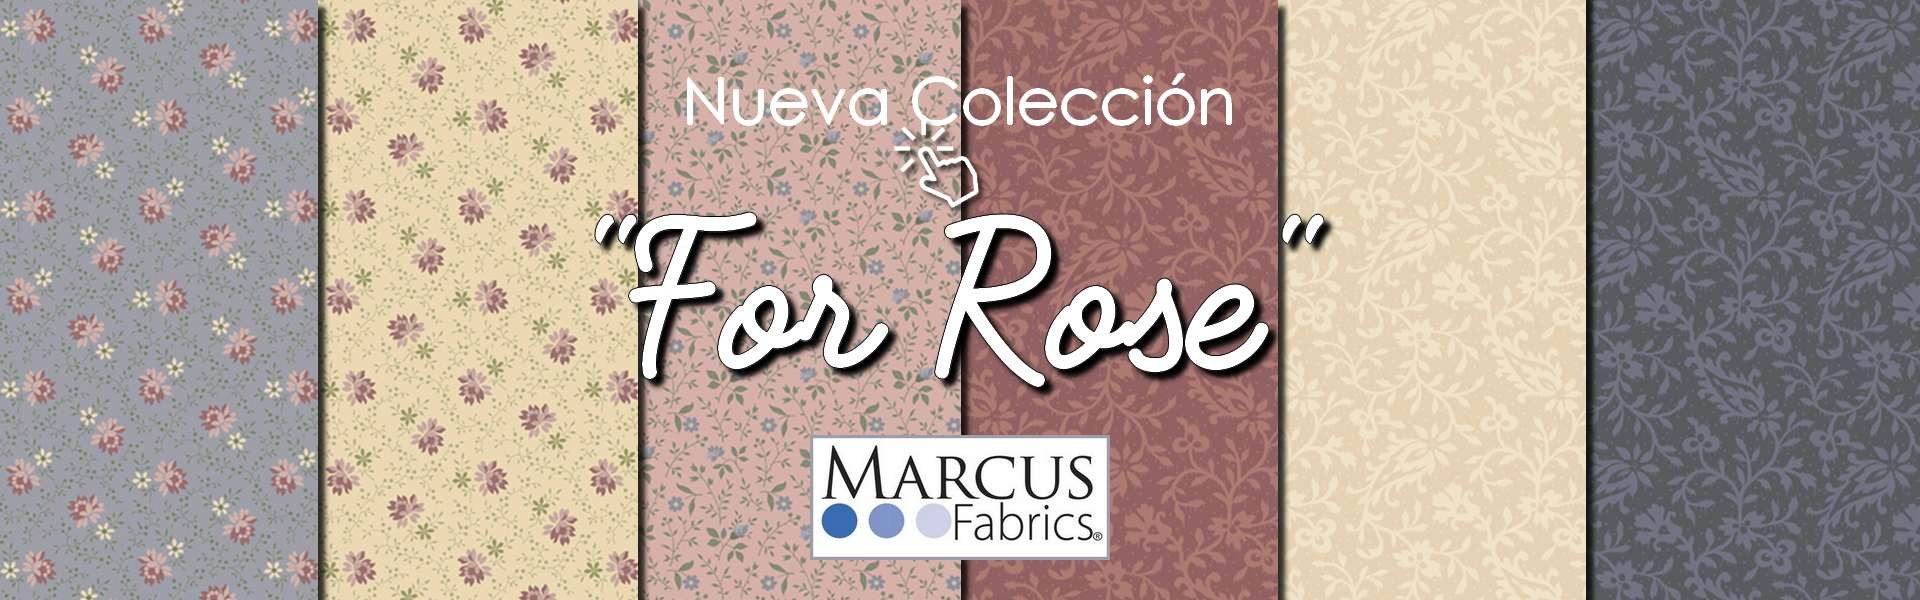 Colección For Rose de Marchives Marcus Fabrics en Las Tijeras de Gloria